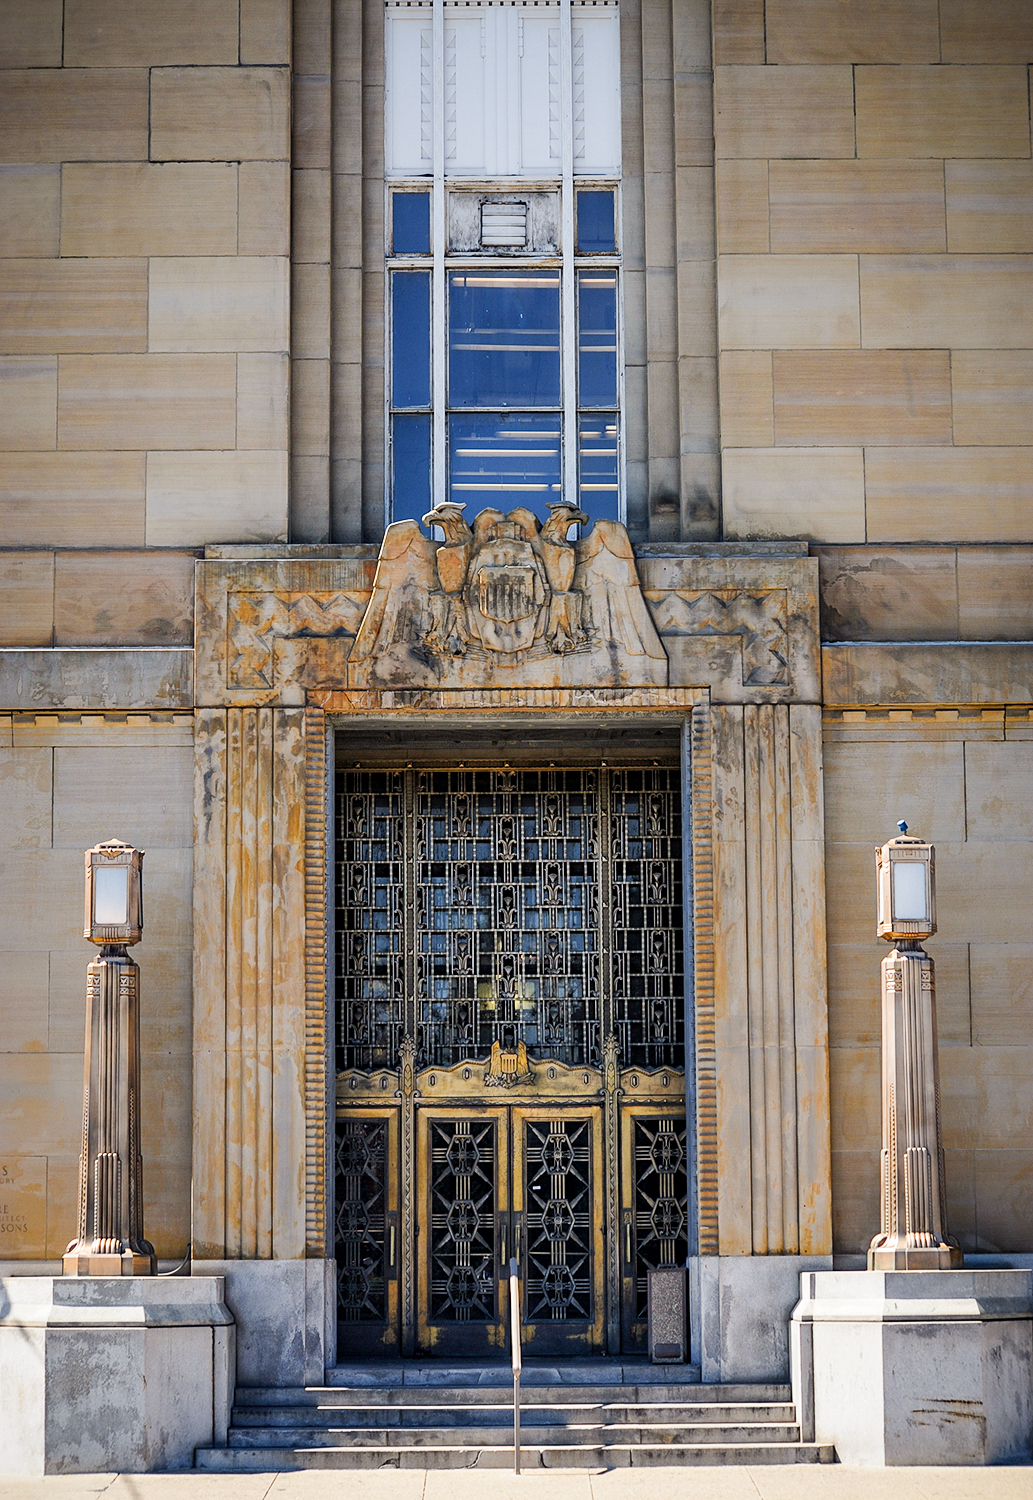 BUILDING: The Dalton Street Post Office / LOCATION: 1623 Dalton Ave (45203) --Queensgate / TIBDIT: Built in 1932, this monument of Art Deco style was also built by architects Samuel Hannaford & Sons. / IMAGE: Melissa Doss Sliney